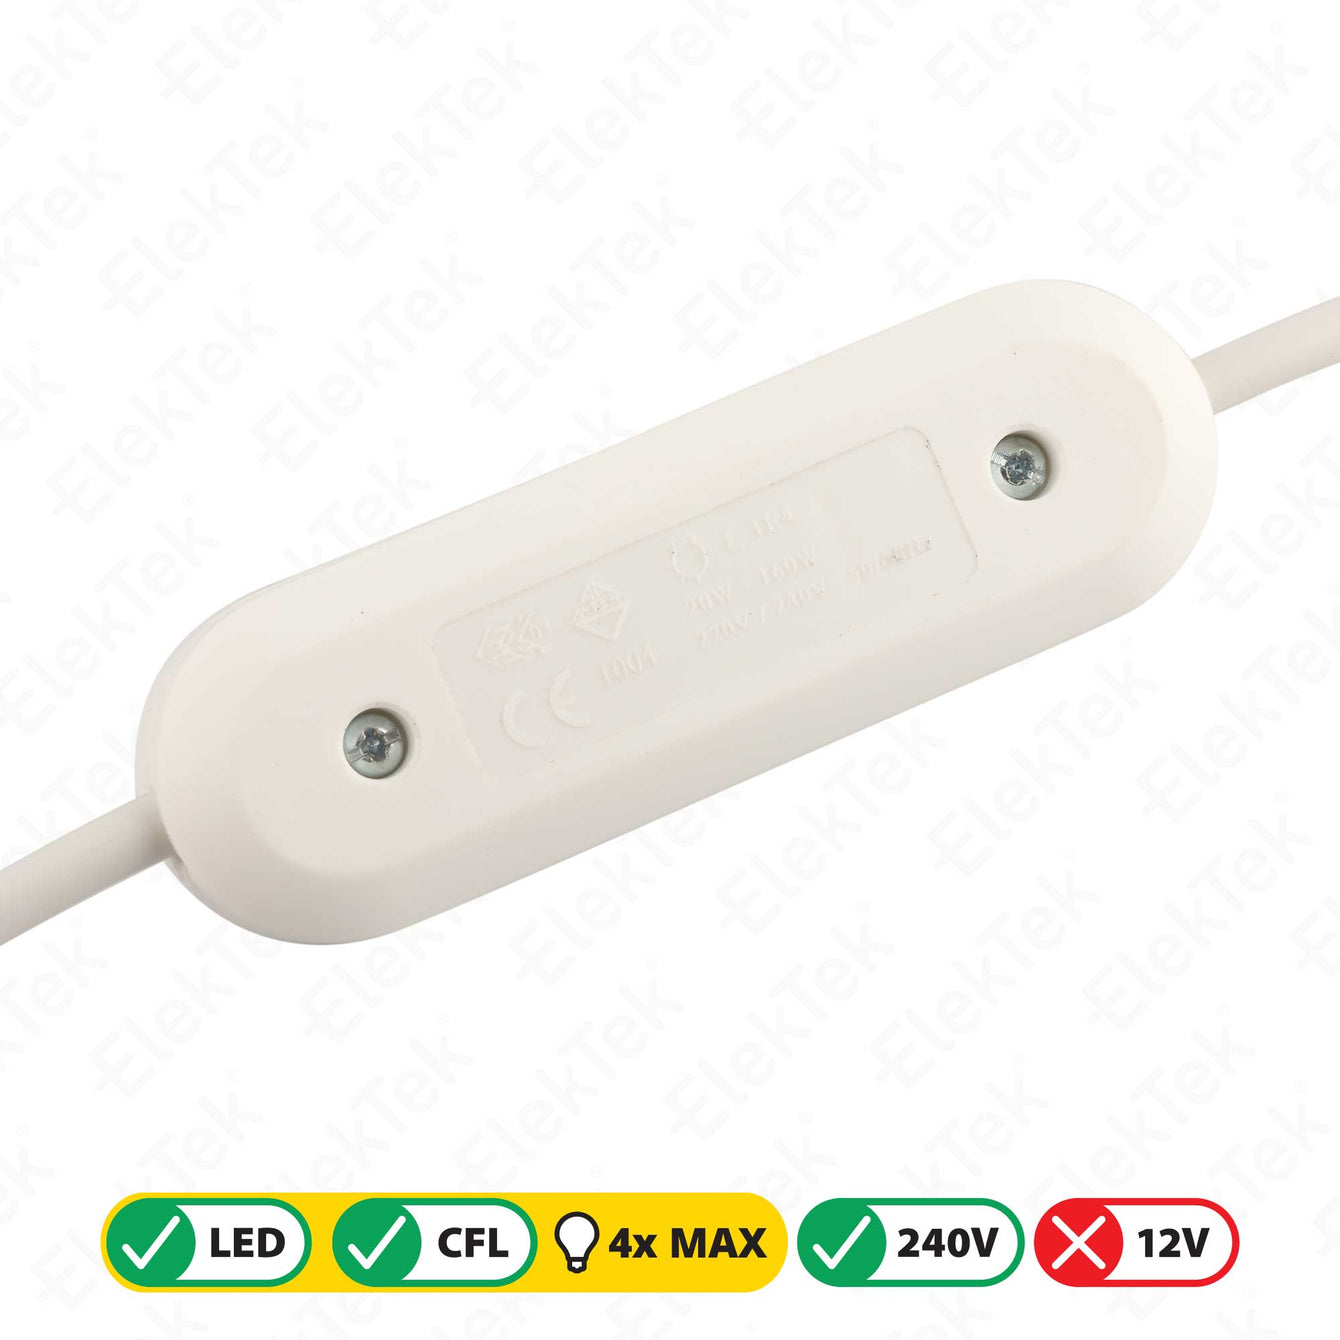 ElekTek LED Compatible Universal In Line Push Button Dimmer Switch 240v AC 2 Core Suitable For LED CFL & Incandescent Bulbs White